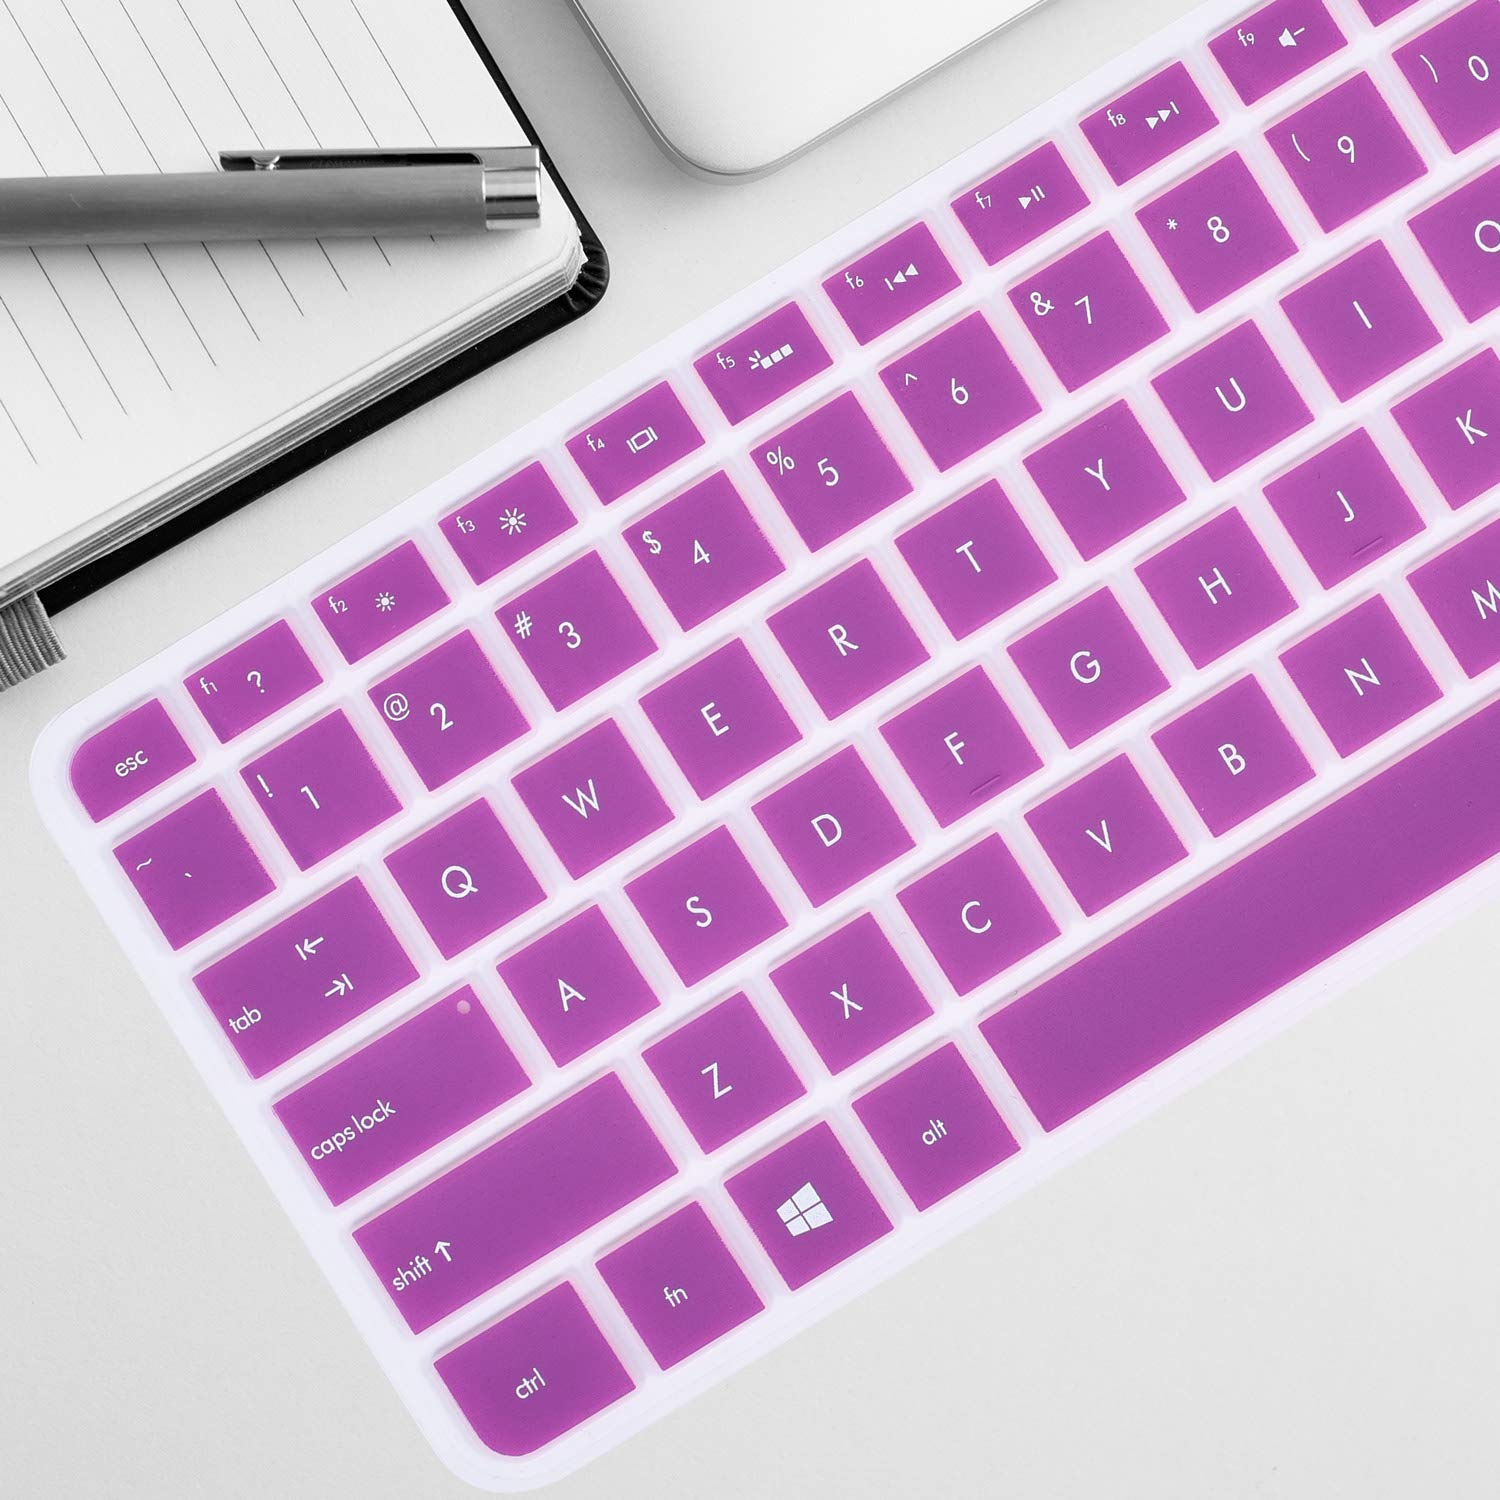 AutoLive Keyboard Protector Skin Cover Compatible 13.3 HP Envy 13 Spectre XT Ultrabook 13-2050nr 13-2150nr 13-2057nr 13-2000 13-2100 13-2101tu 13-2102tu 13t-2000 13t-2100 US Layout Laptop